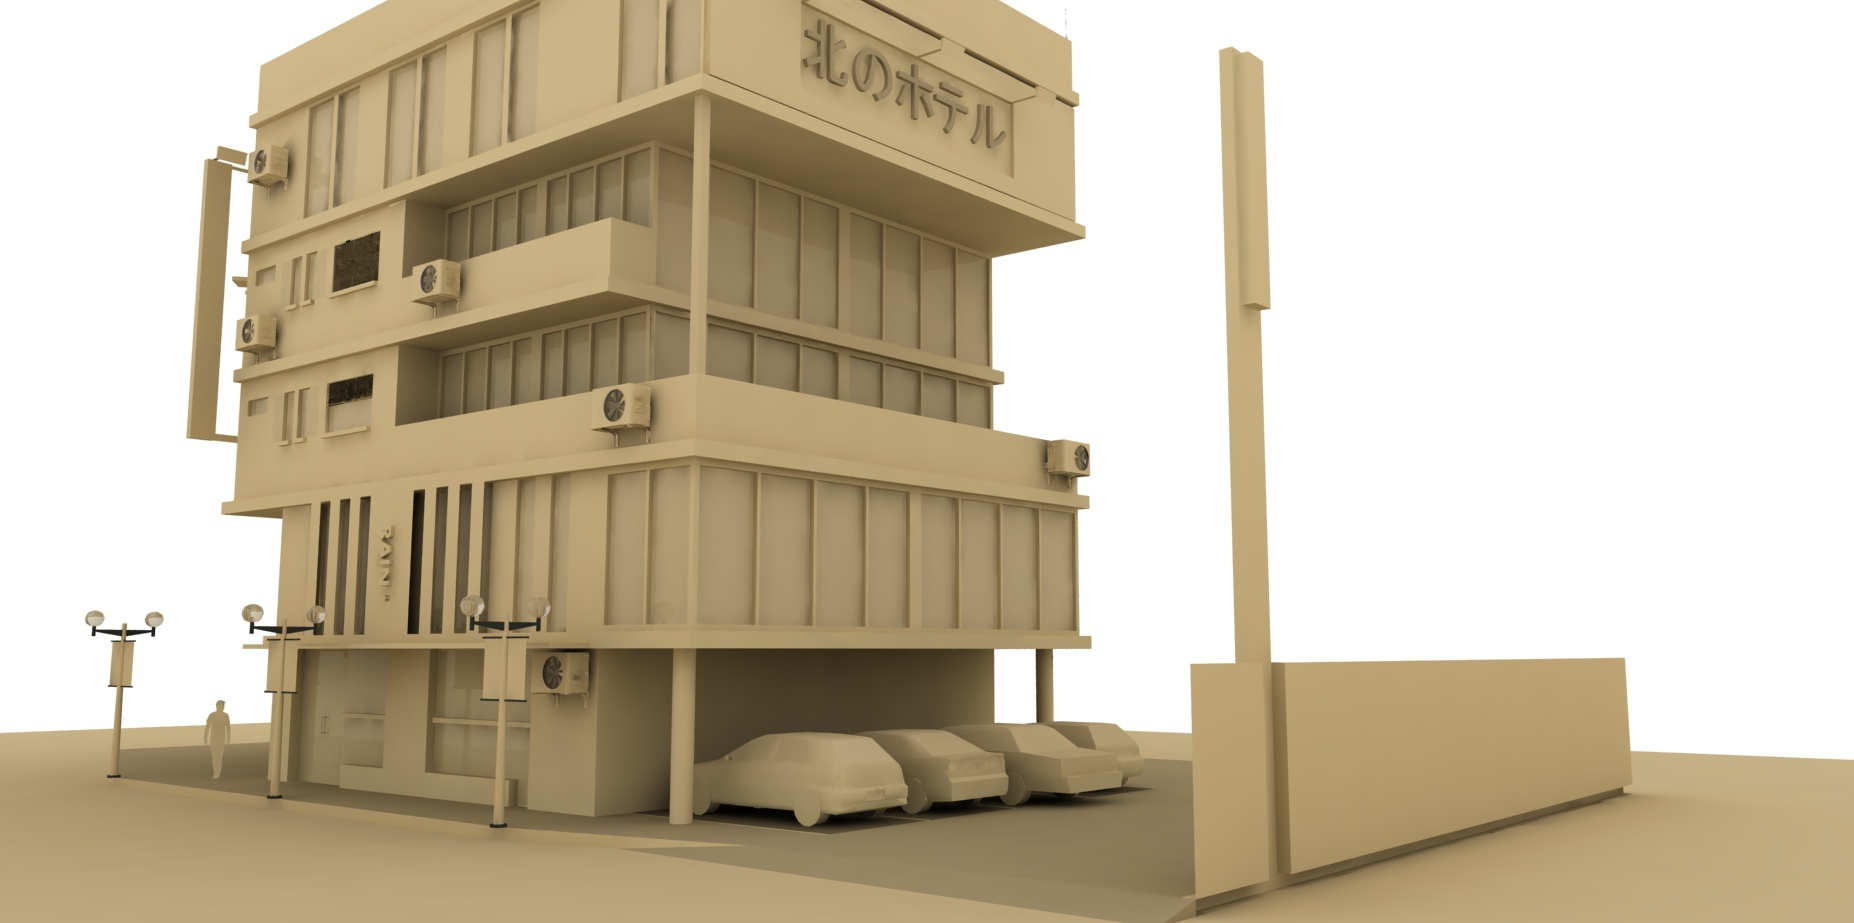 SketchUp'eur architecte -AnthO'- - Page 4 Hot10